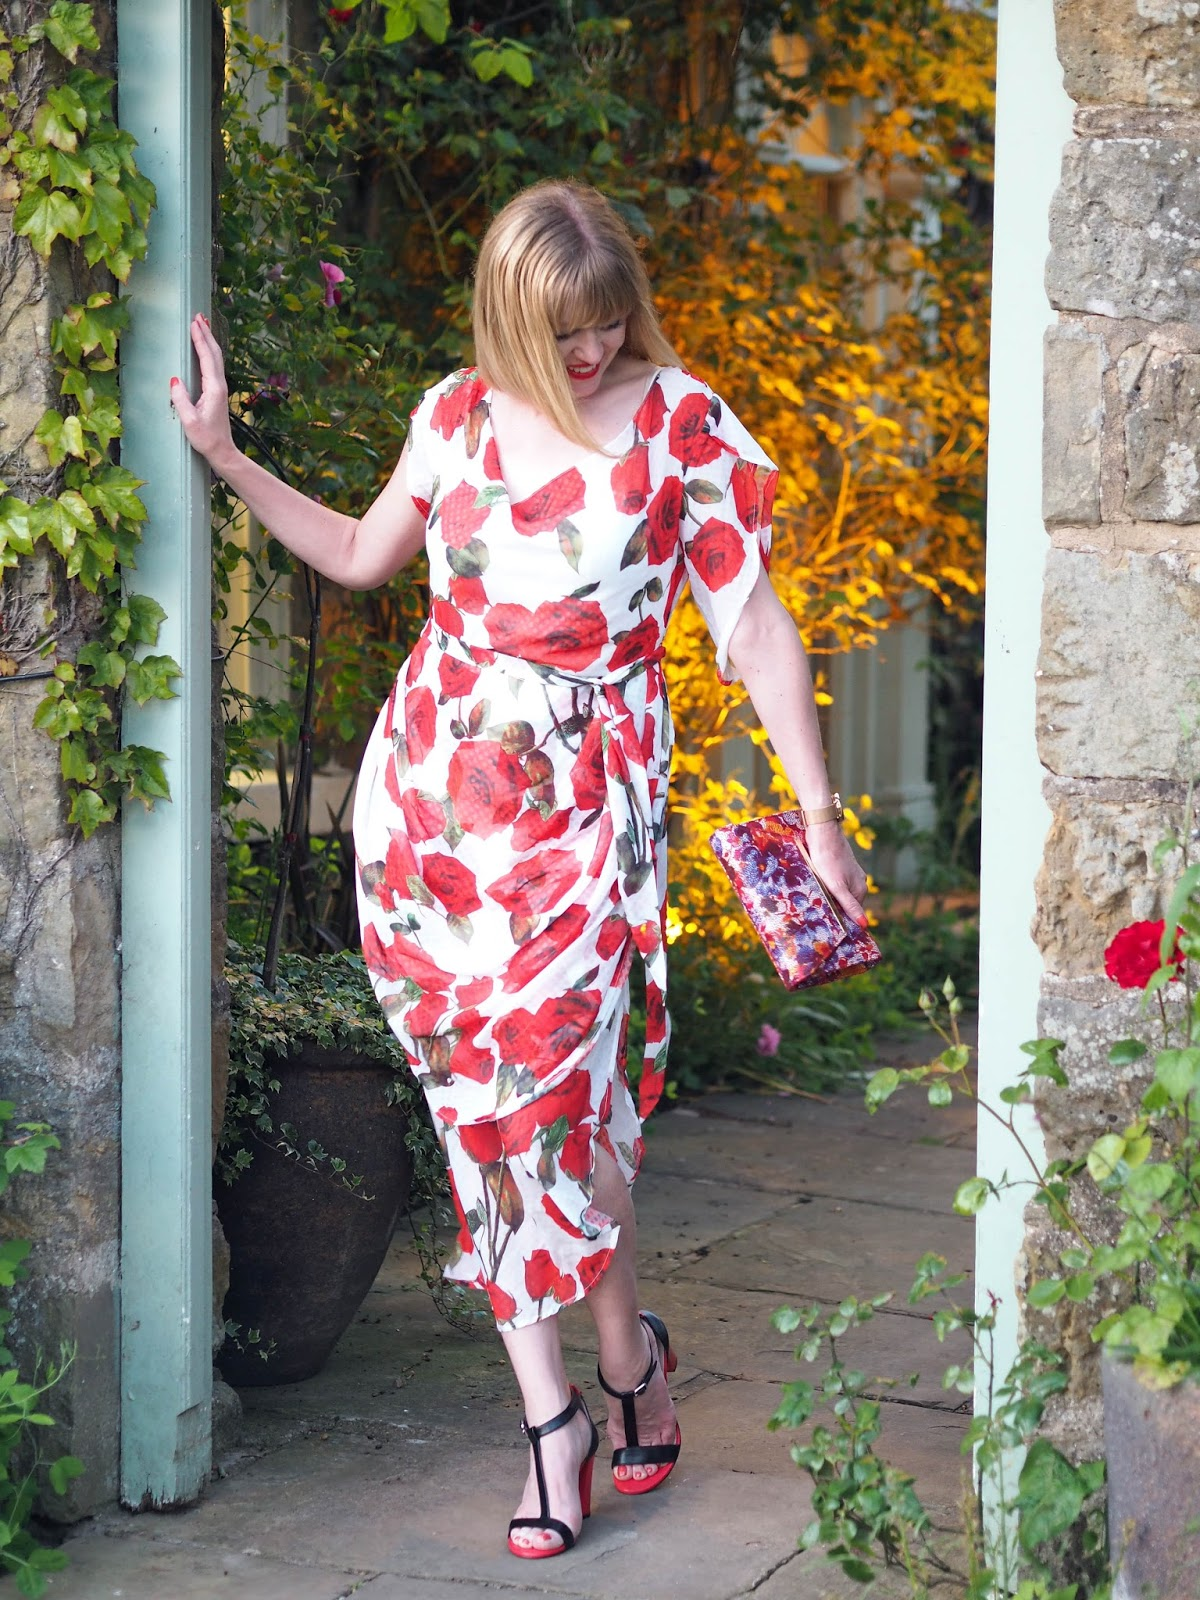 Alice's Pig White and red floral rose draped midi dress with red and black high-heeled sandals style over 40 floral clutch